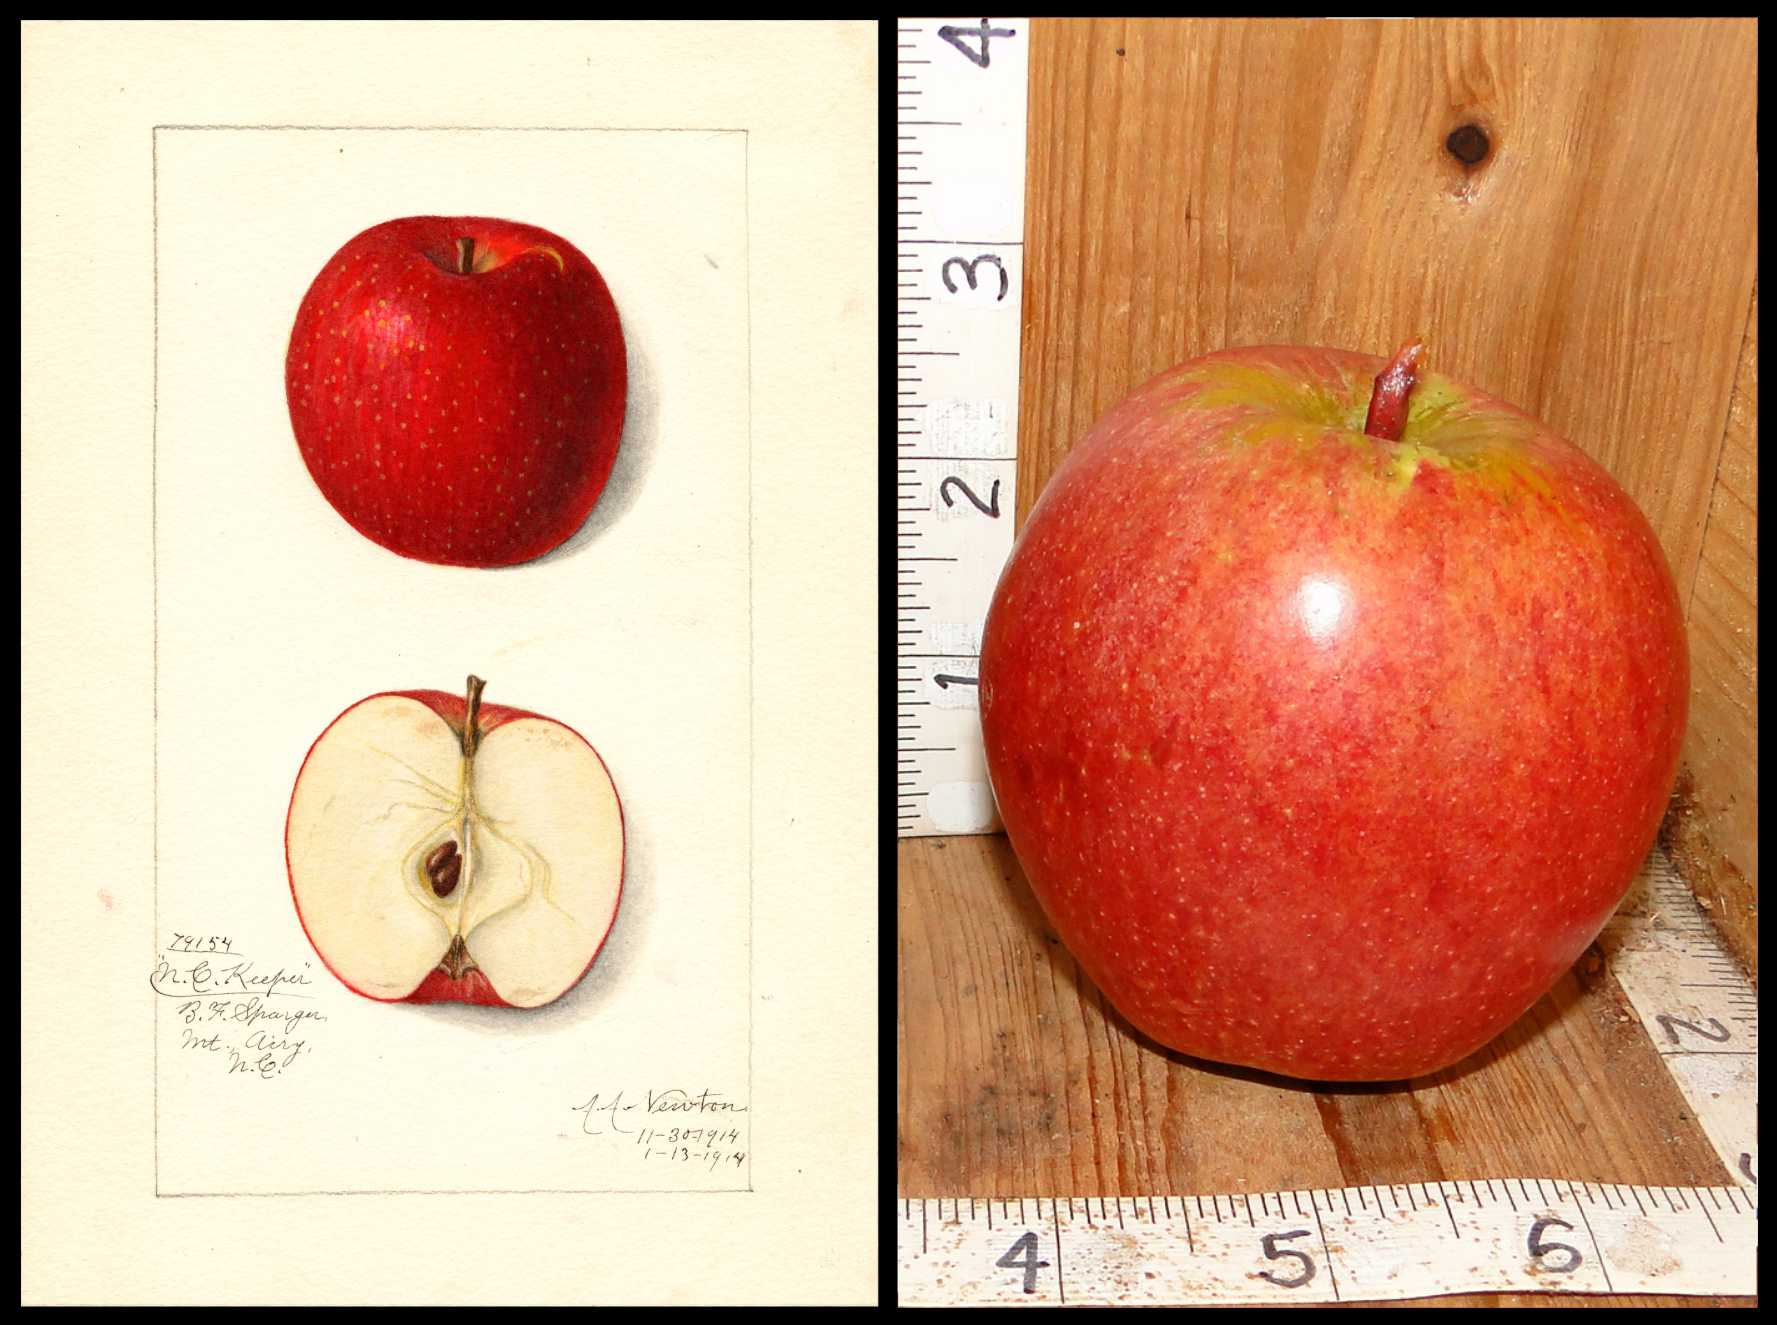 light red apple with some mottling